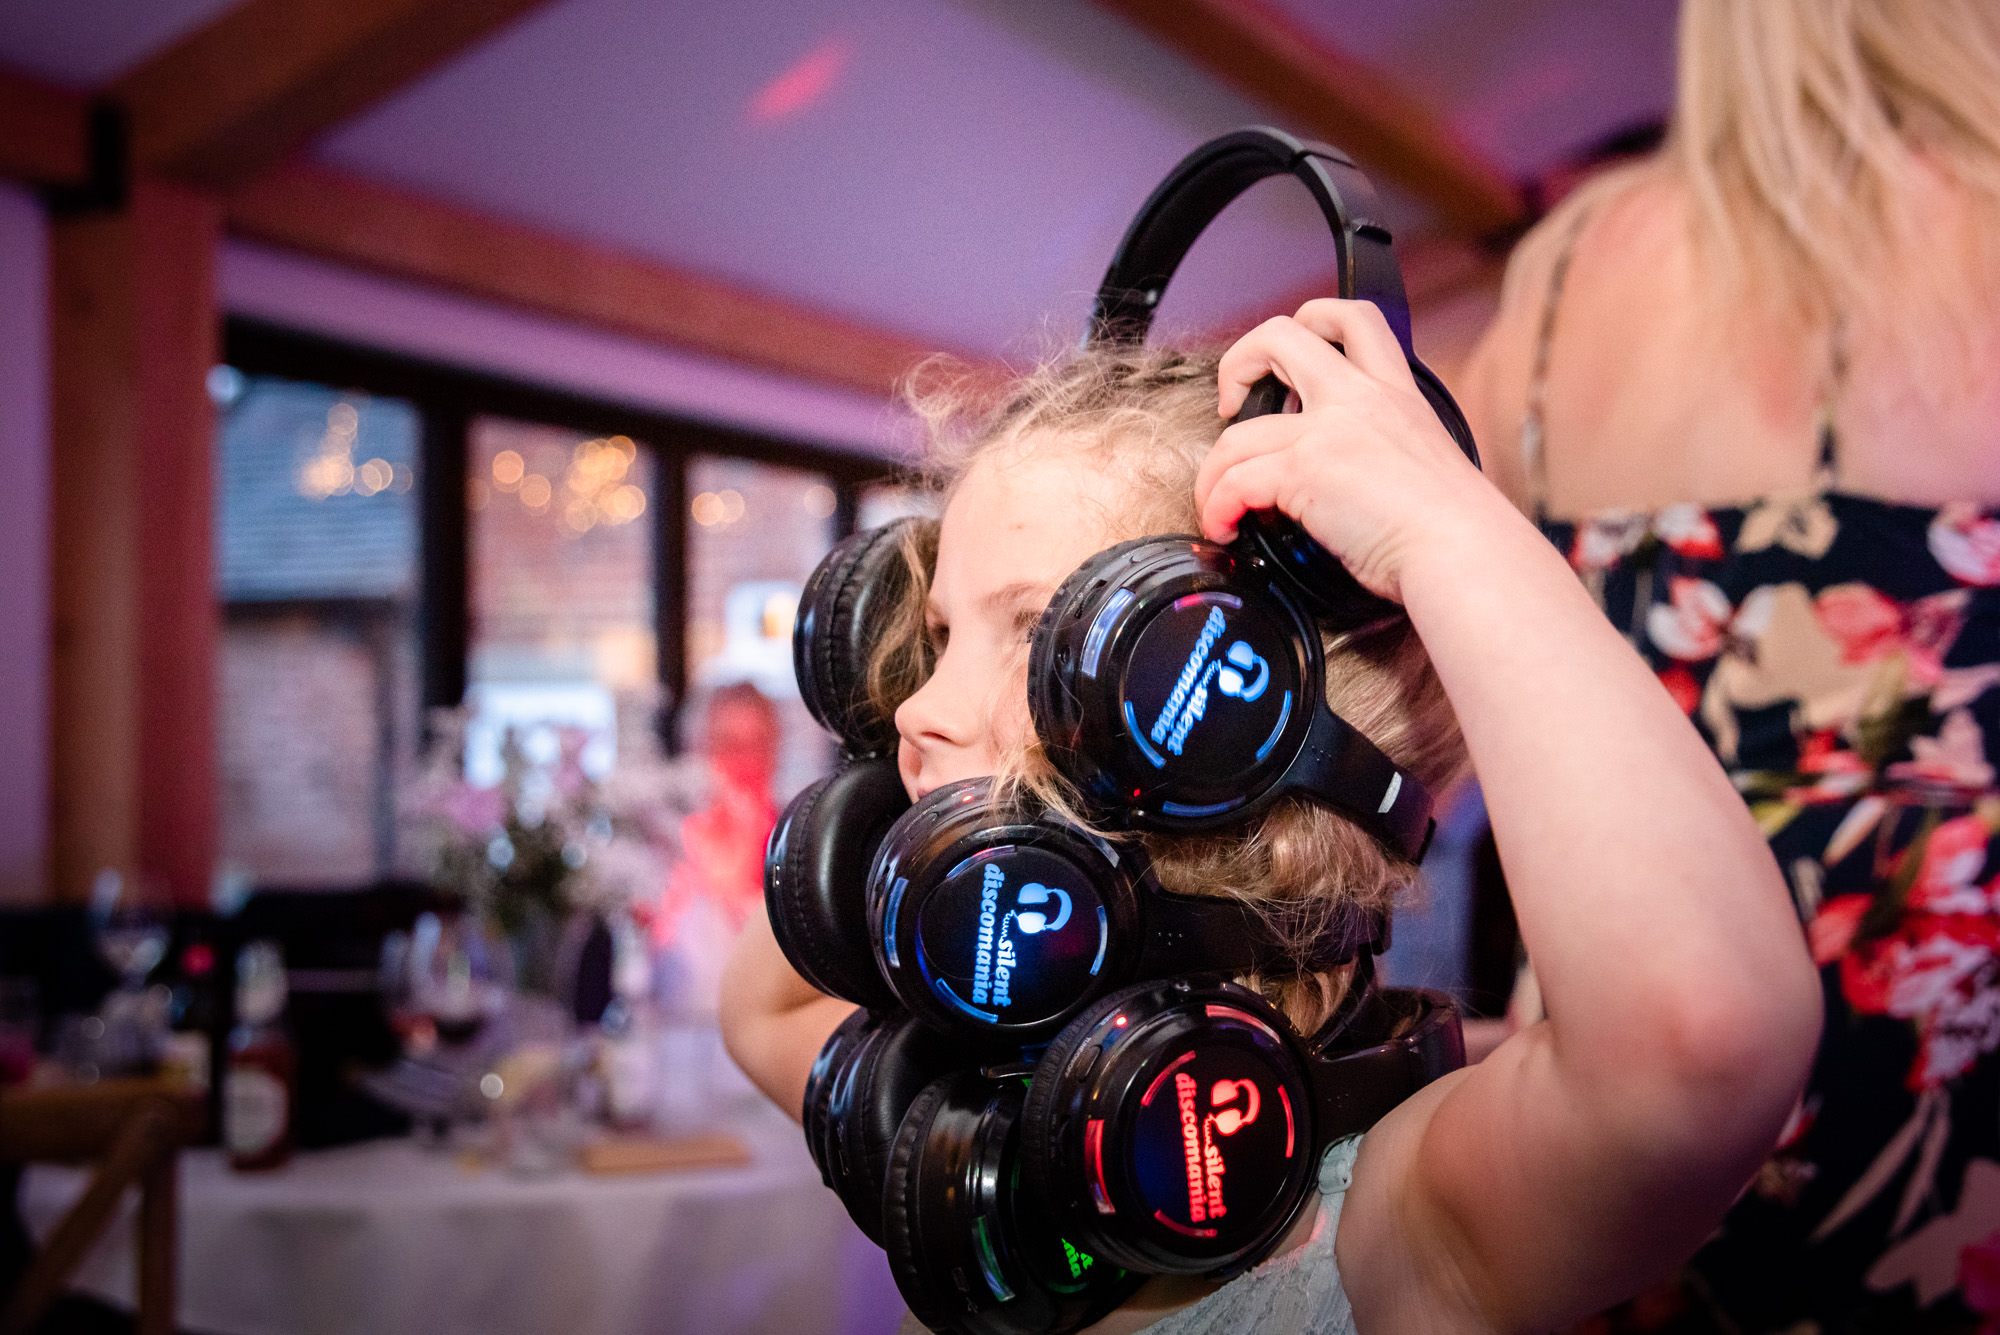 Silent disco with four headsets